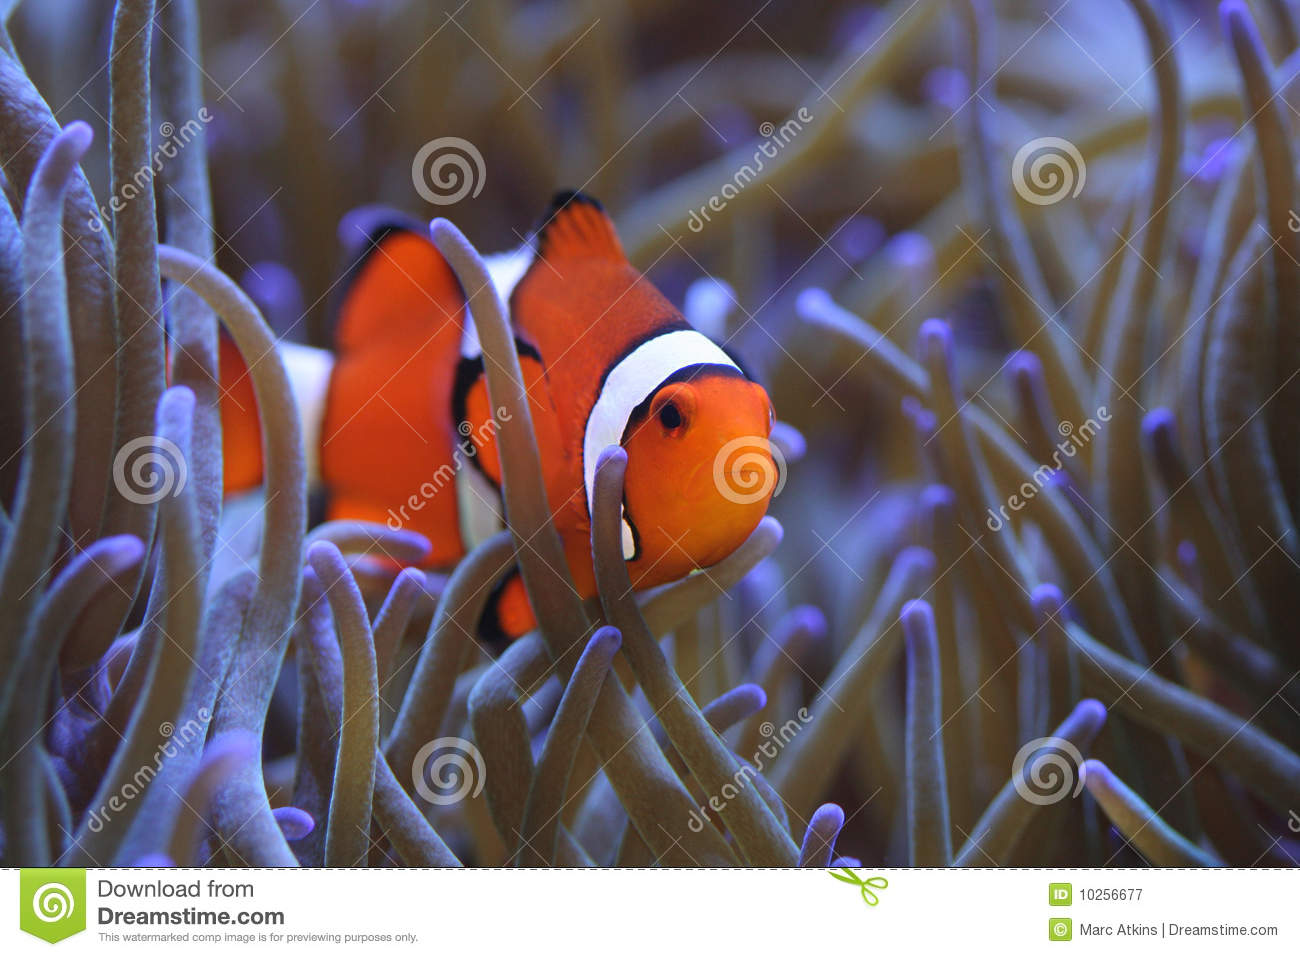 Clownfish Amphiprion Percula In Host Sea Anemone Stock Image - Image ...